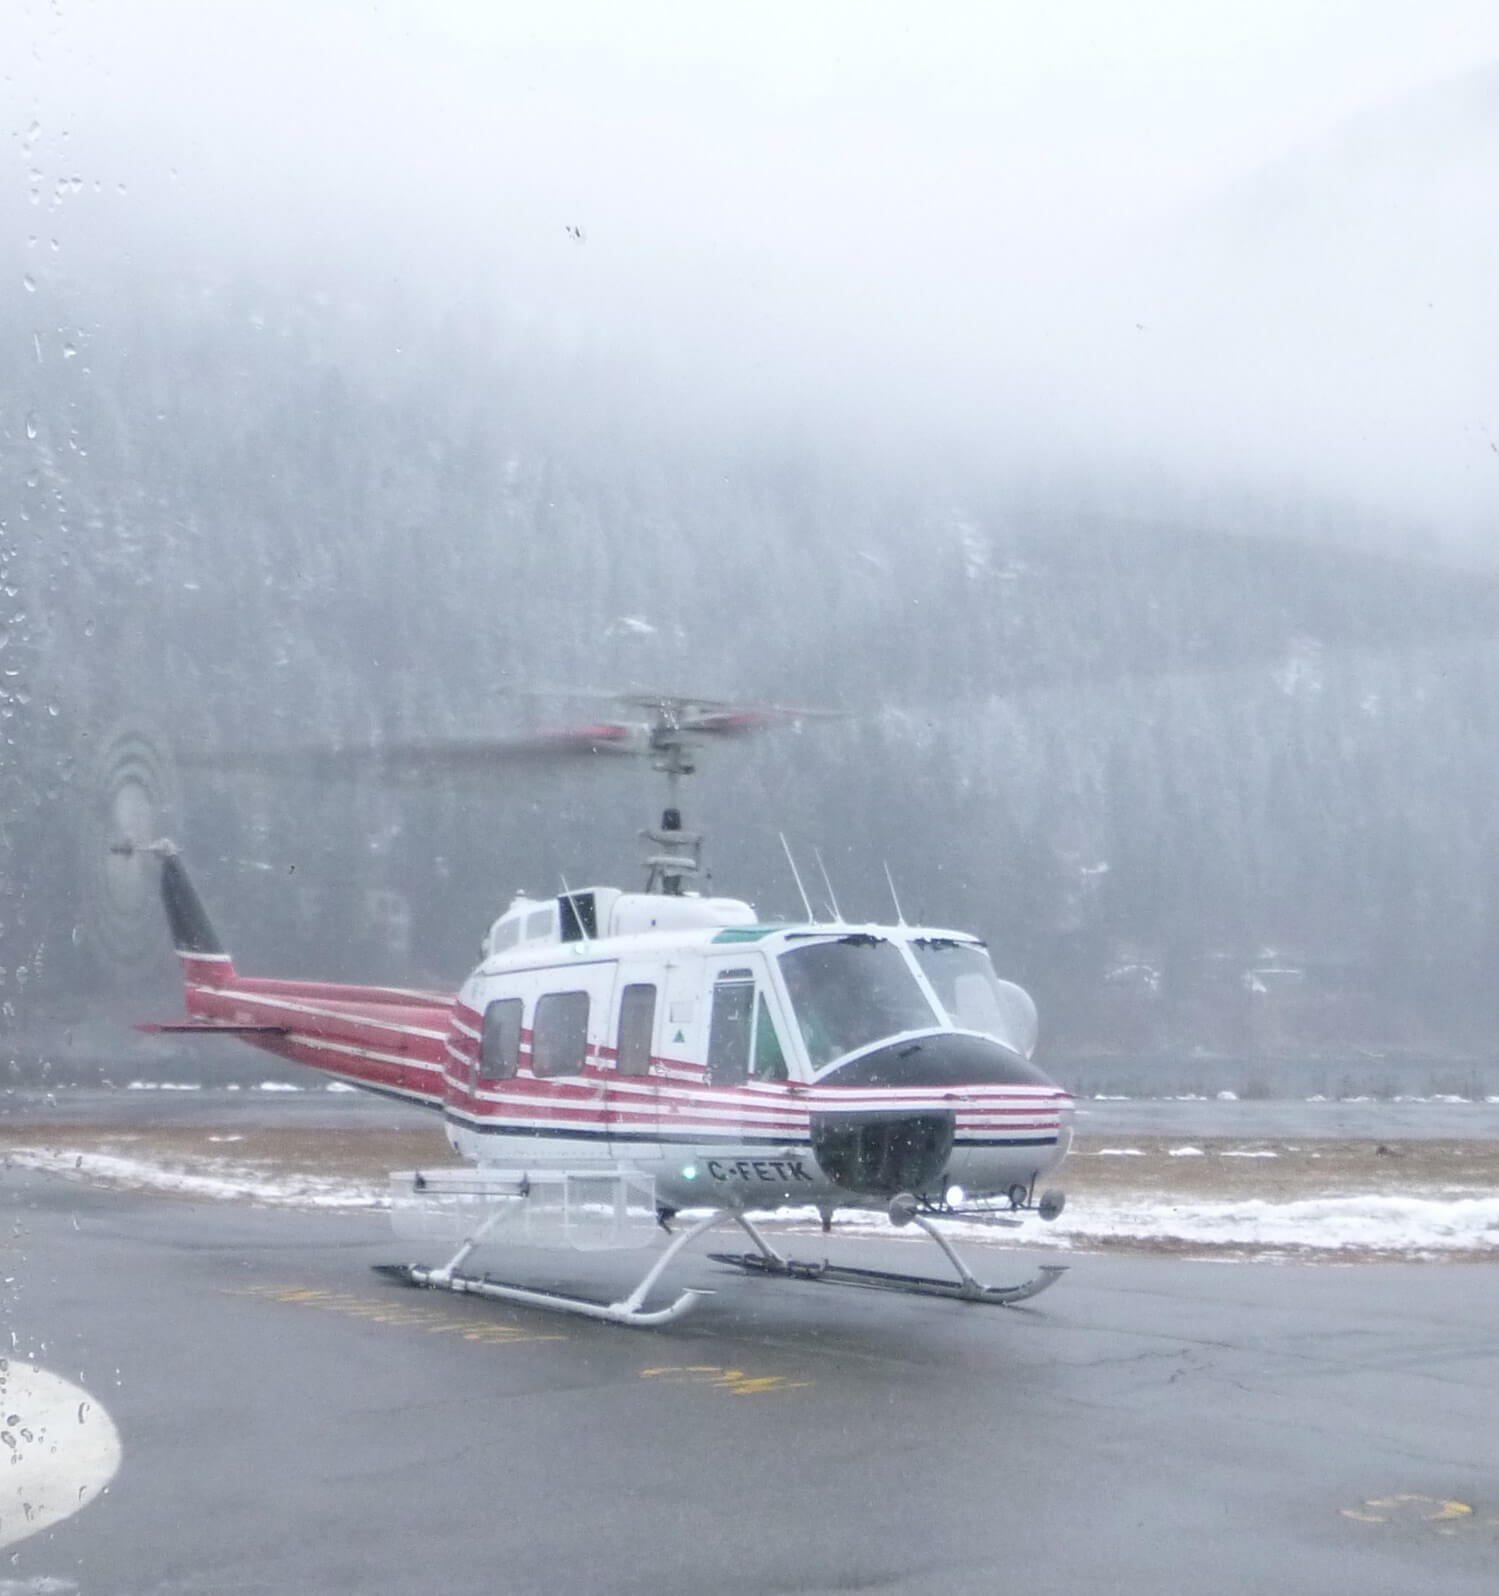 Helicopter going to Baldface Lodge